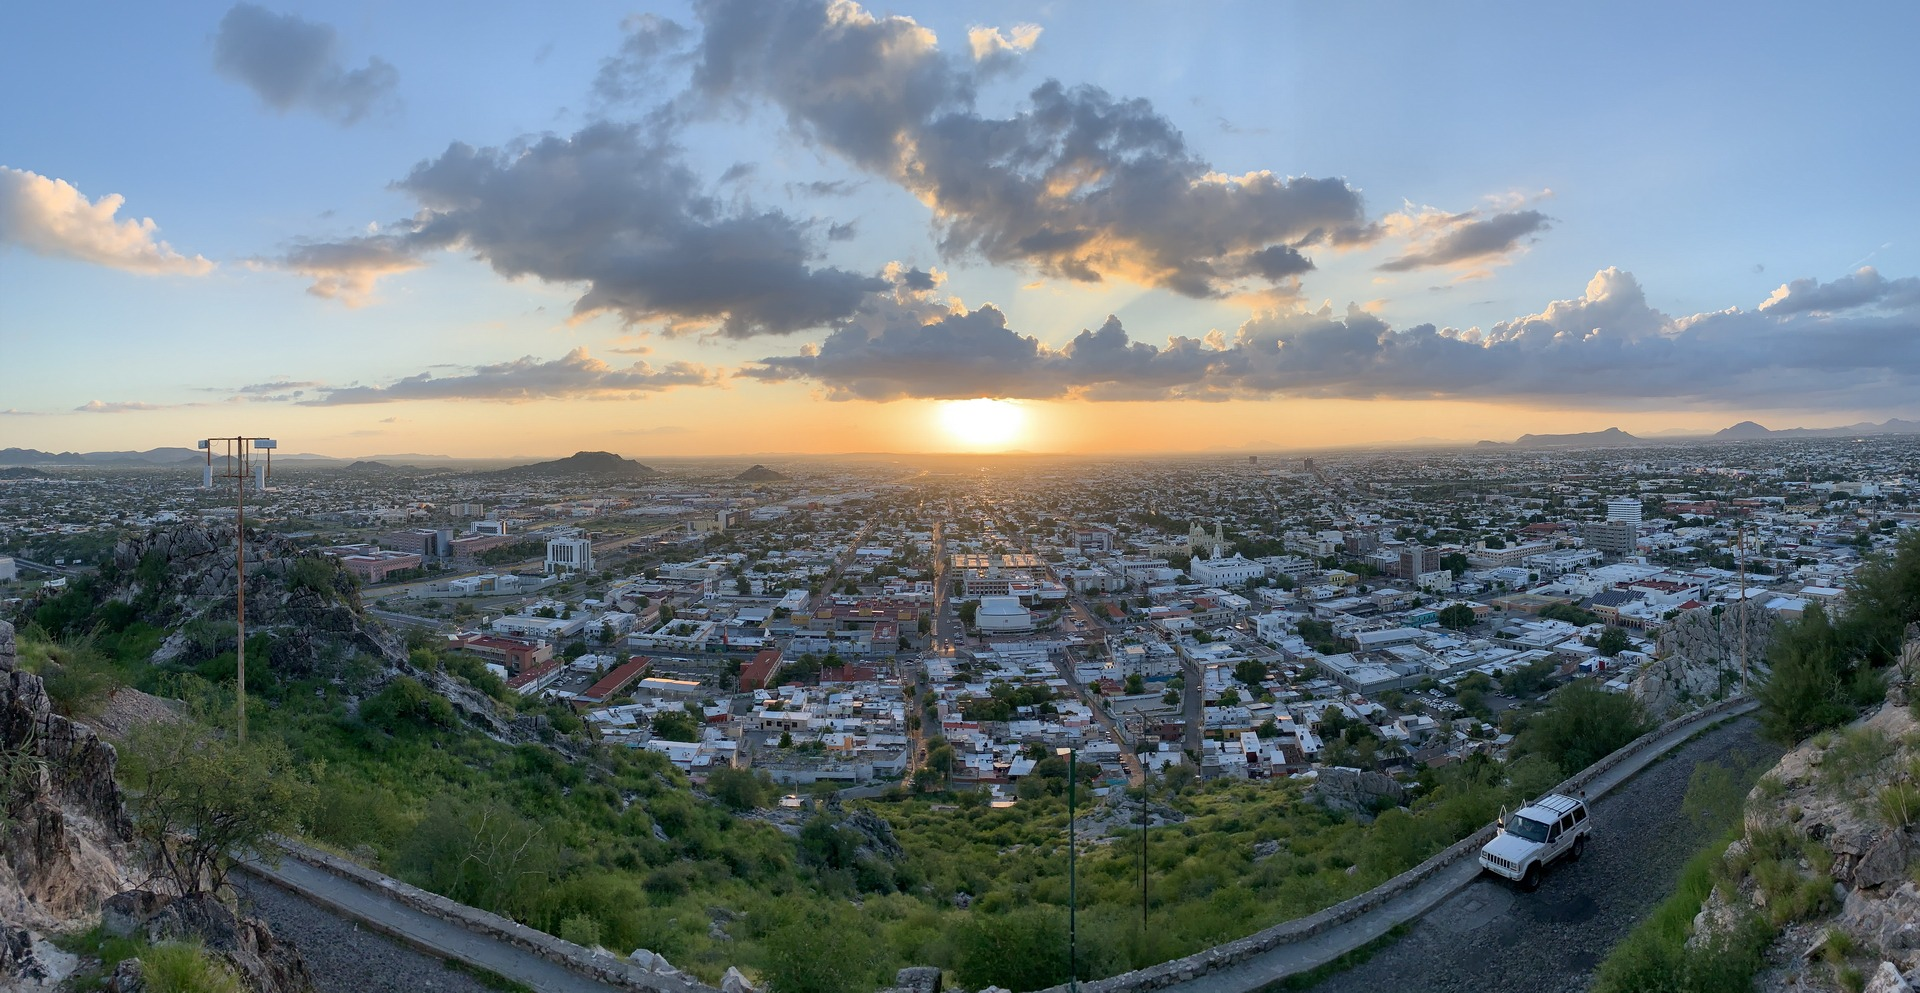 Overview of Hermosillo Sonora - Mexican Insurance Store